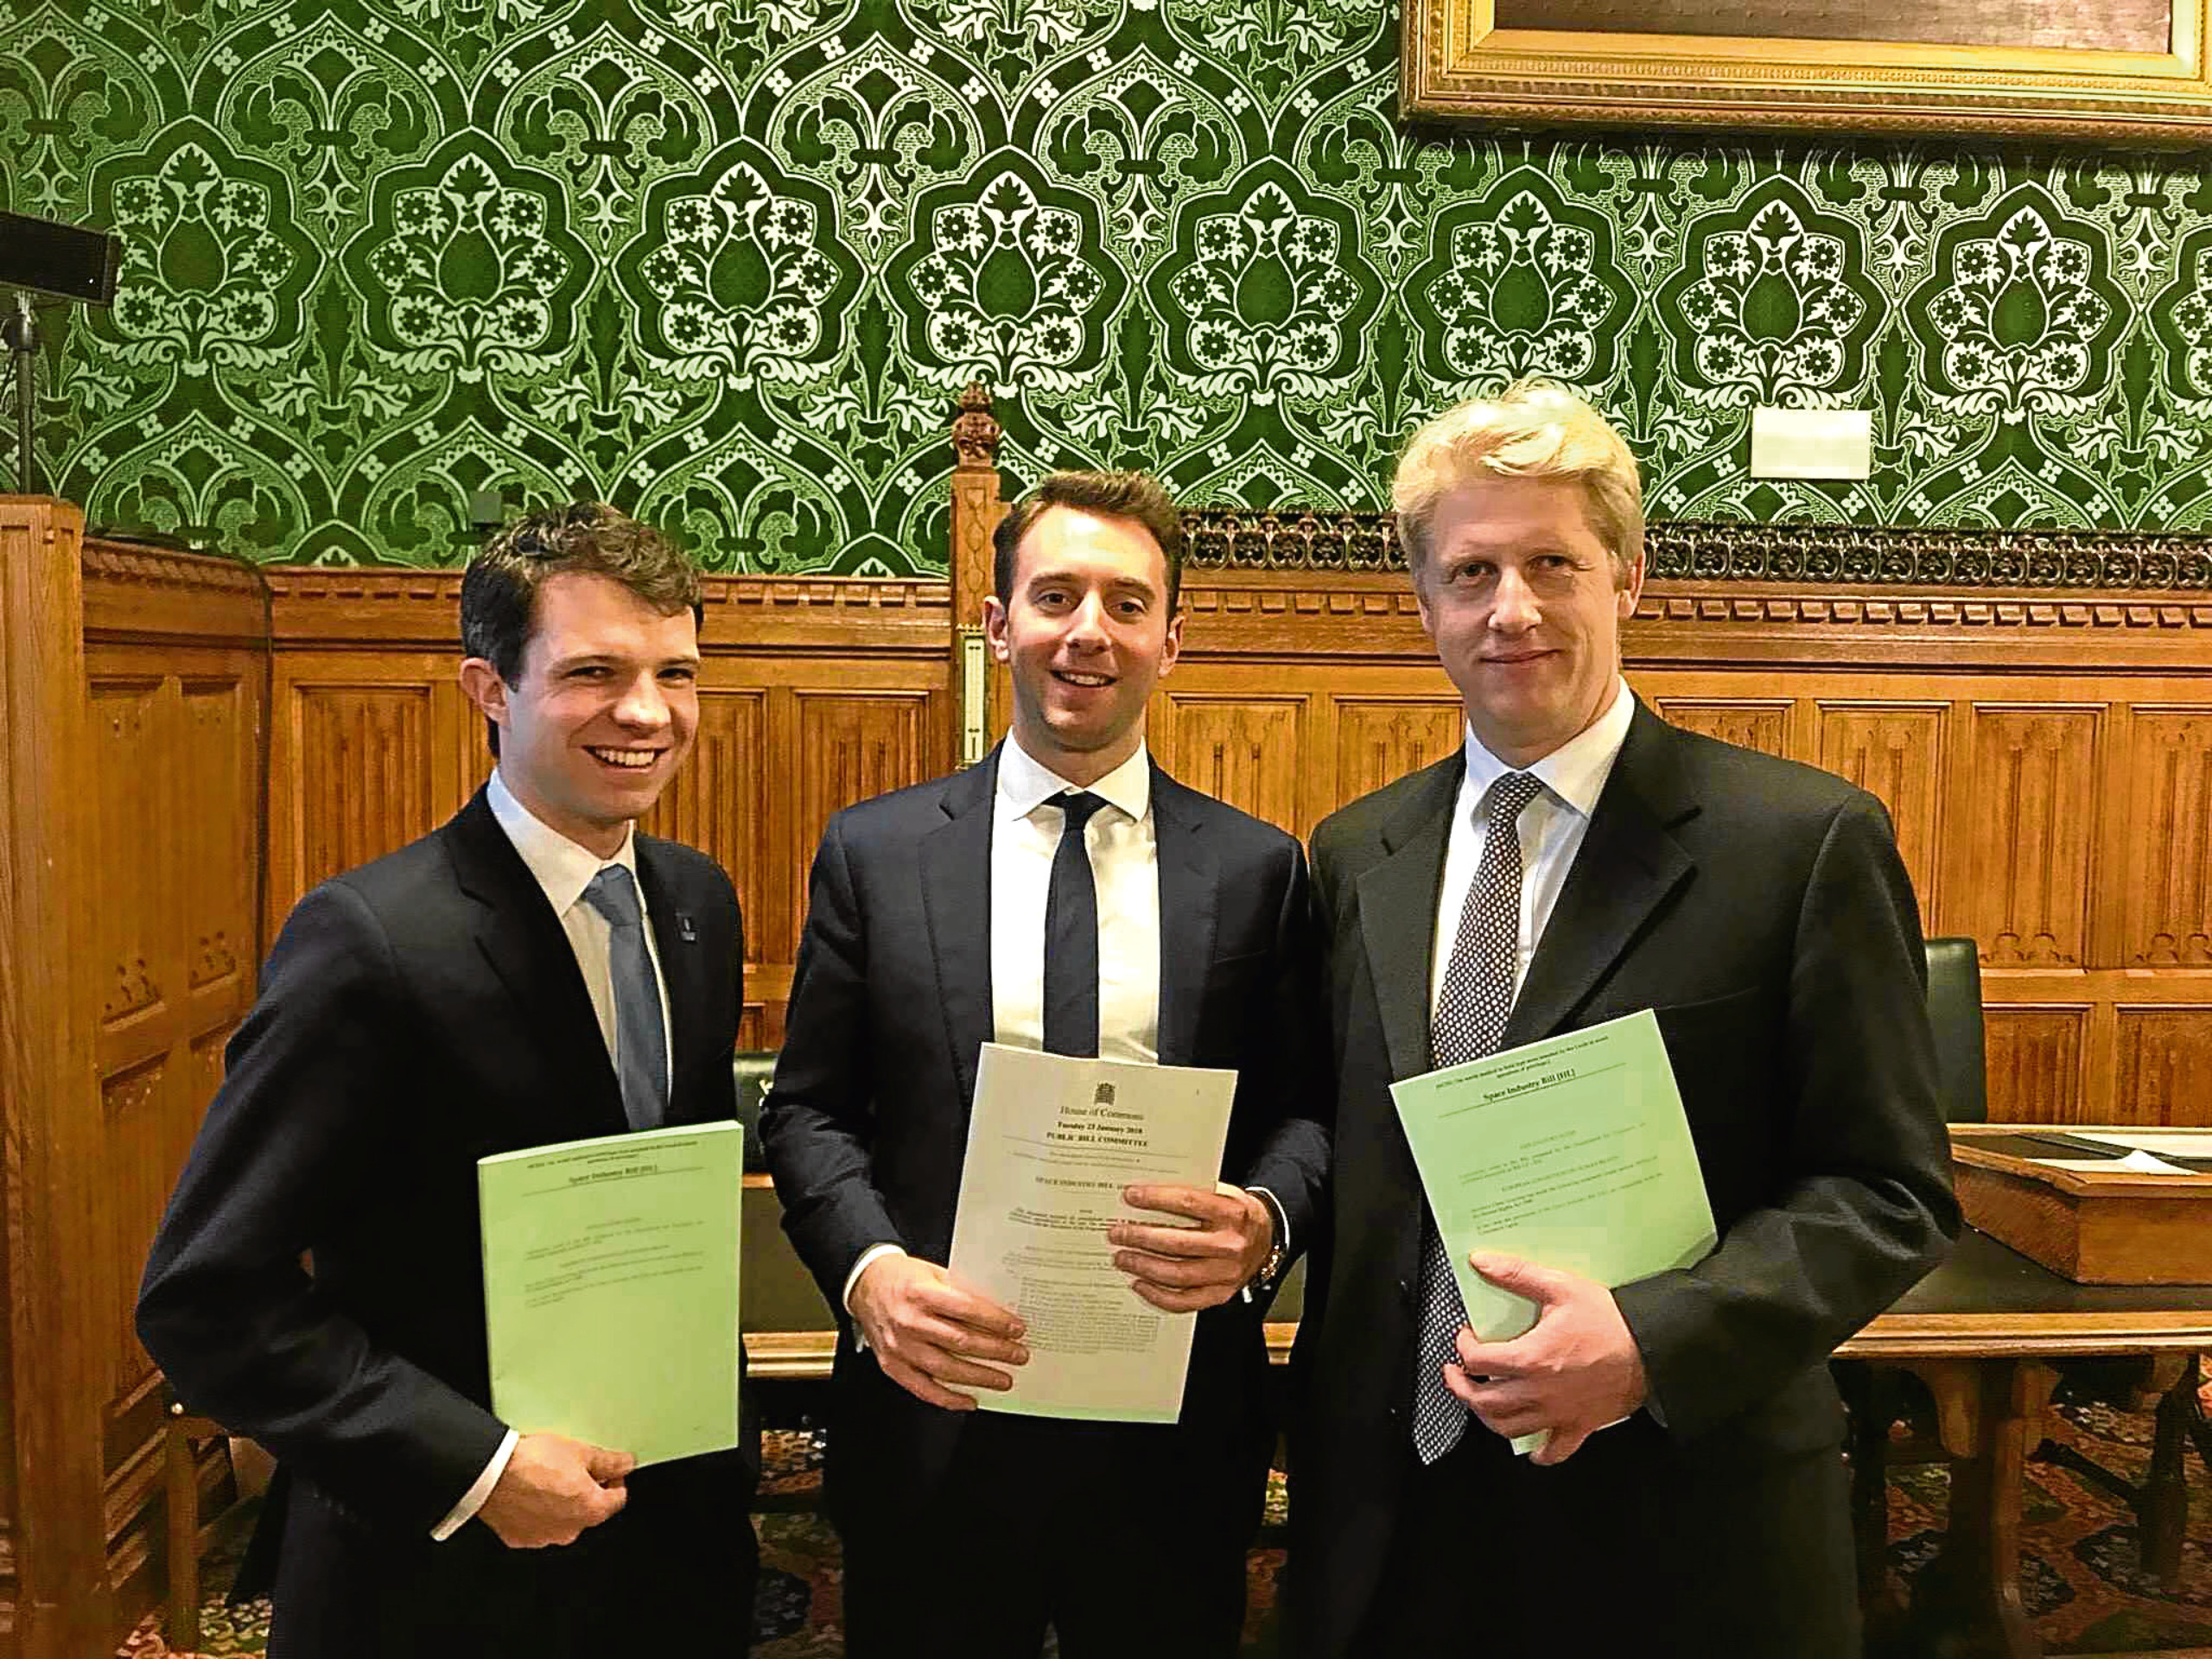 Andrew Bowie MP with Ochil and South Perthshire MP Luke Graham and the Space Minister Jo Johnson MP.